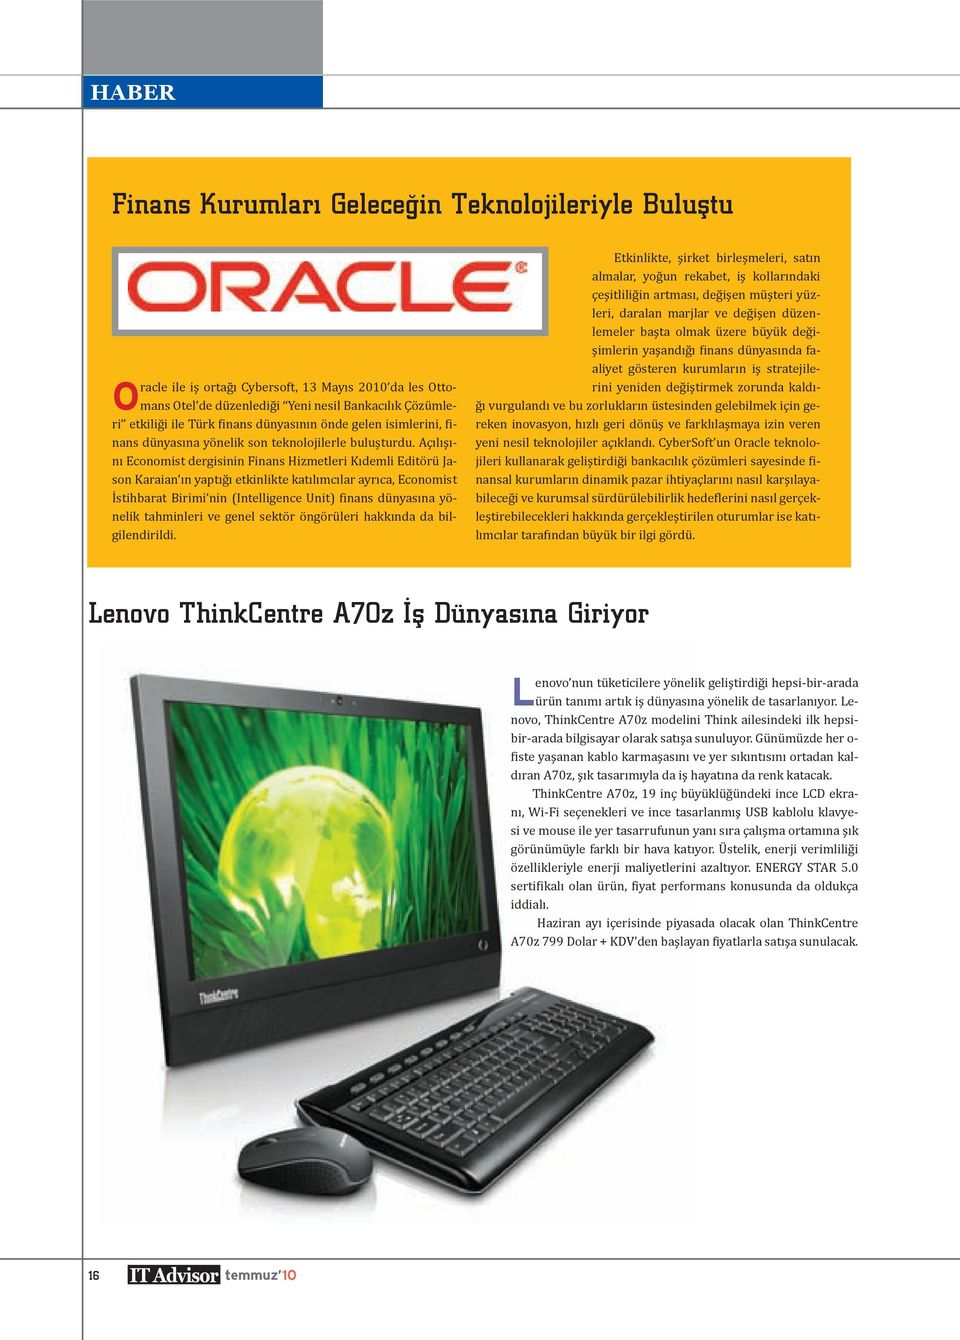 O Lenovo ThinkCentre A70z